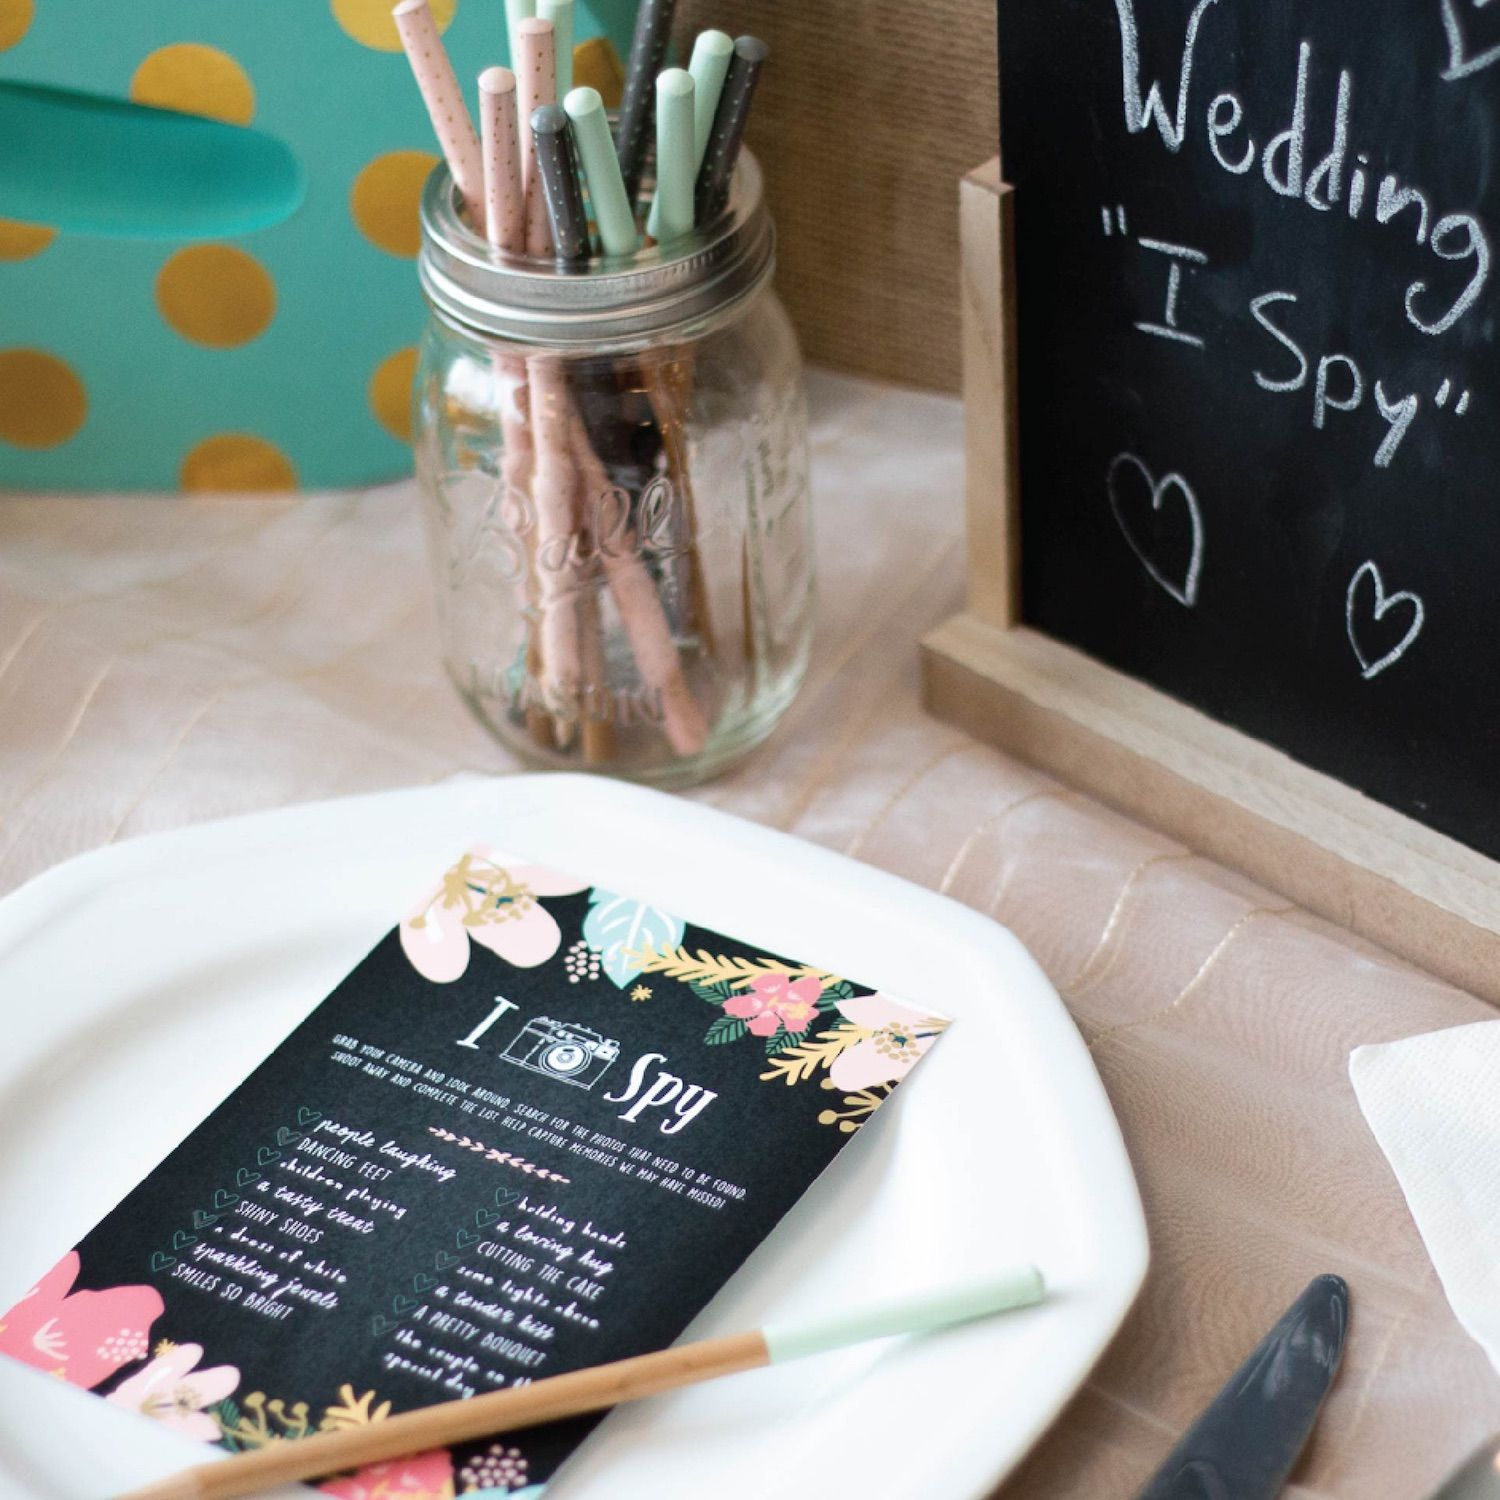 Custom Wedding Guest Books  Gifts from Paperramma  Creative